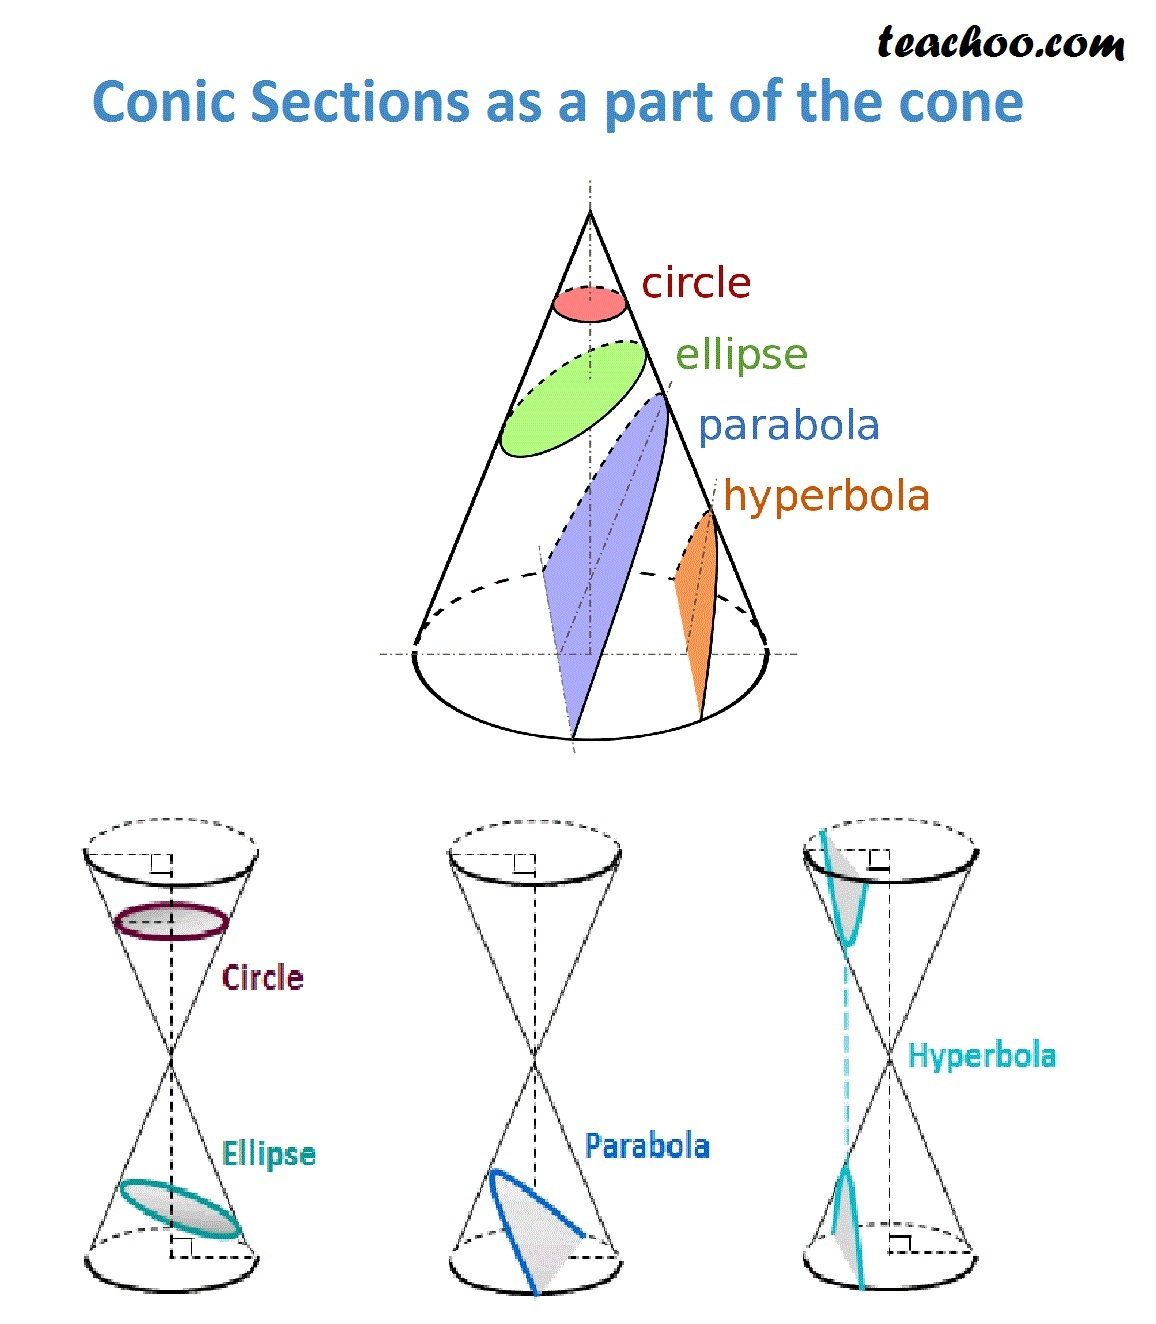 Hyperbola, Parabola, Ellipse, Circle as a part of the cone.jpg